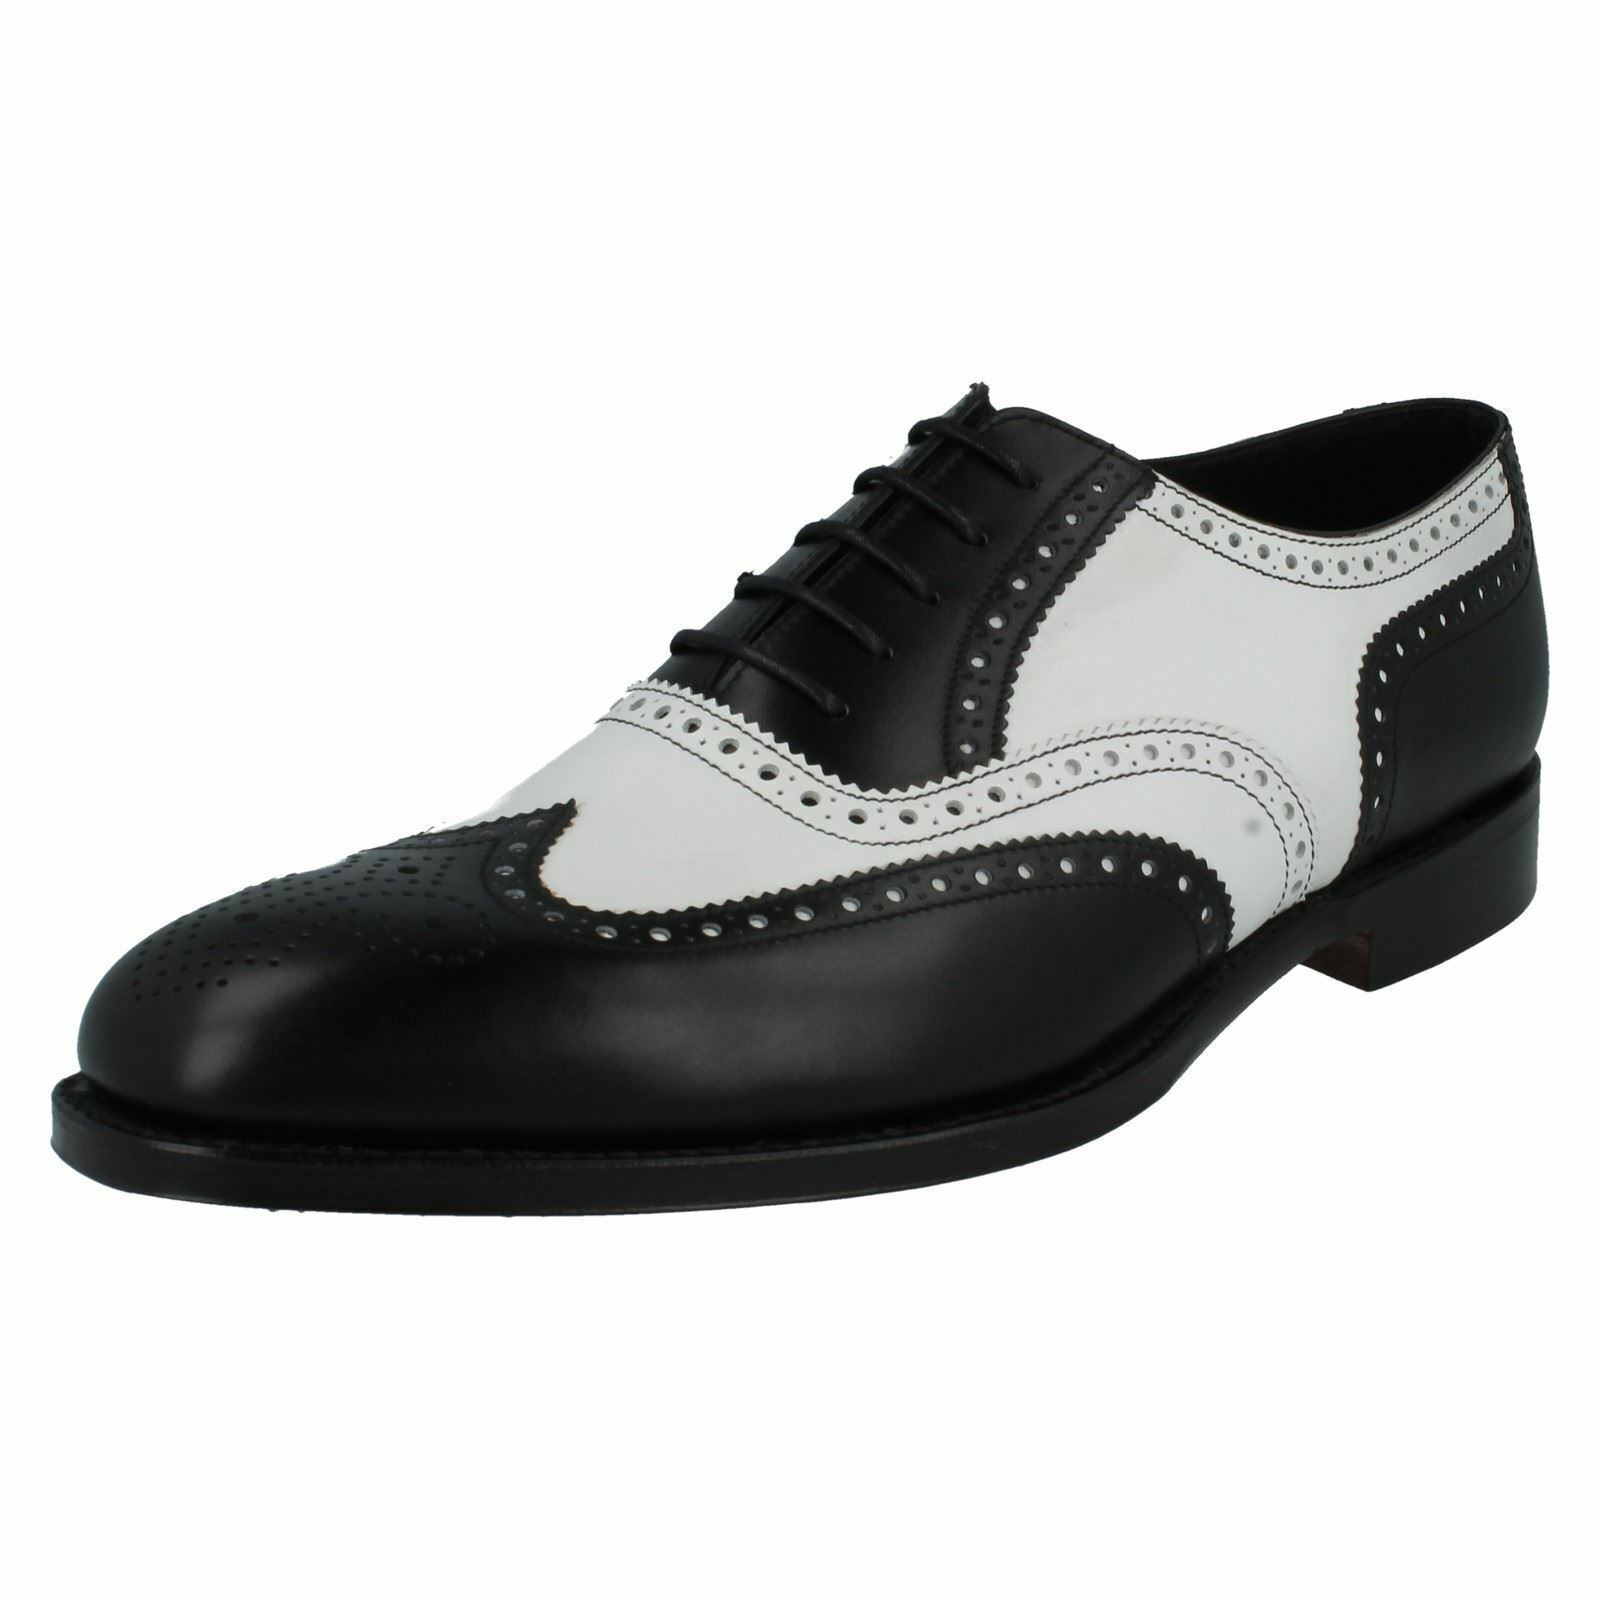 Mens Sloane F fitting black/white leather brogue lace up shoe by Loake 209.00